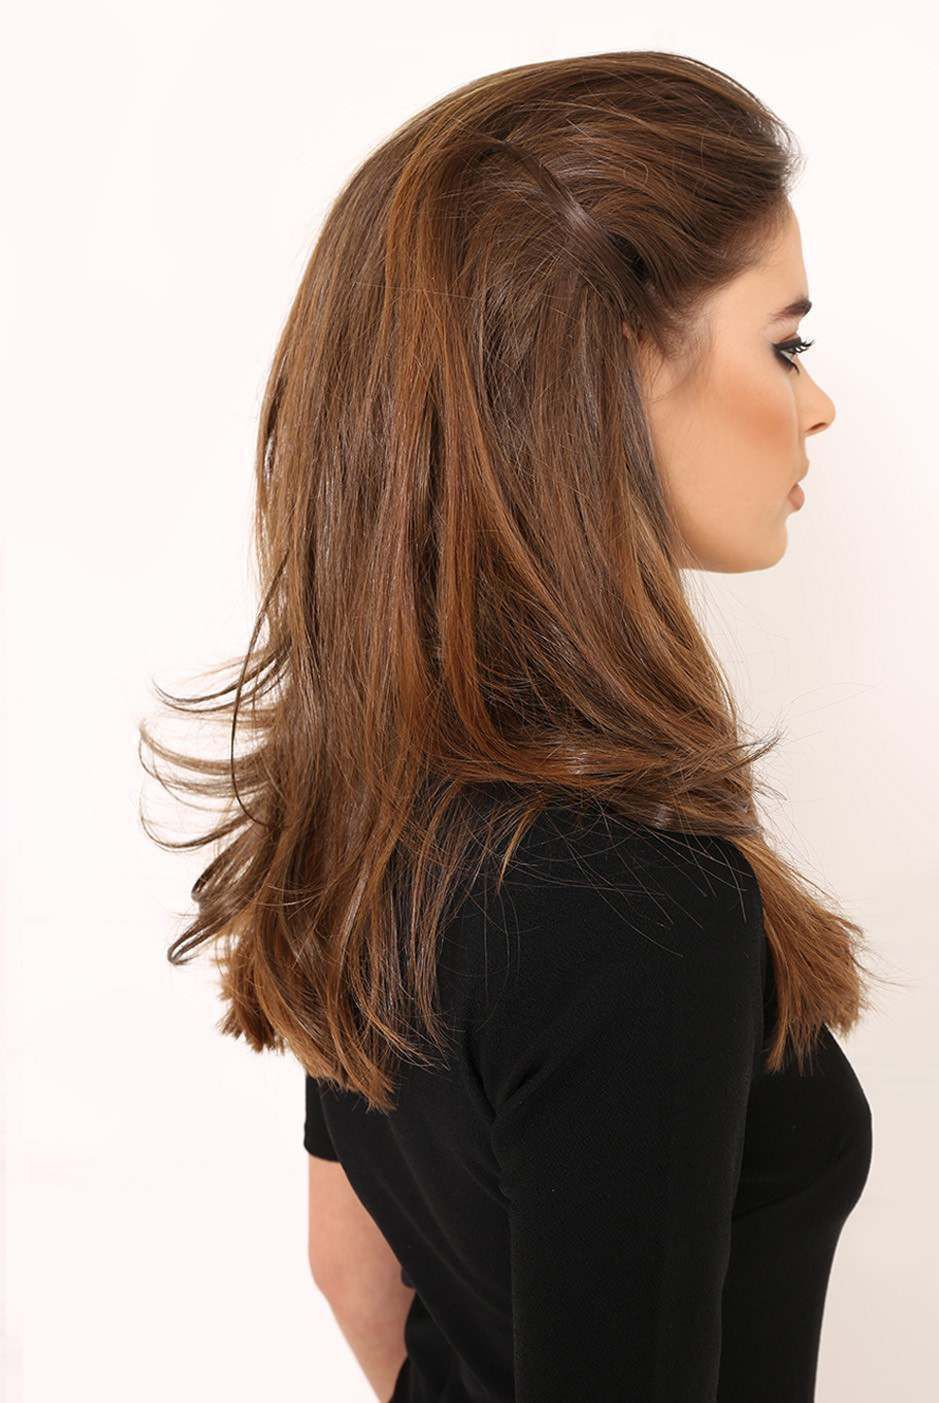 Image Result For Volumizing Haircuts For Long Hair Clip In Hair Pieces Hair Pieces Fine Hair Volume